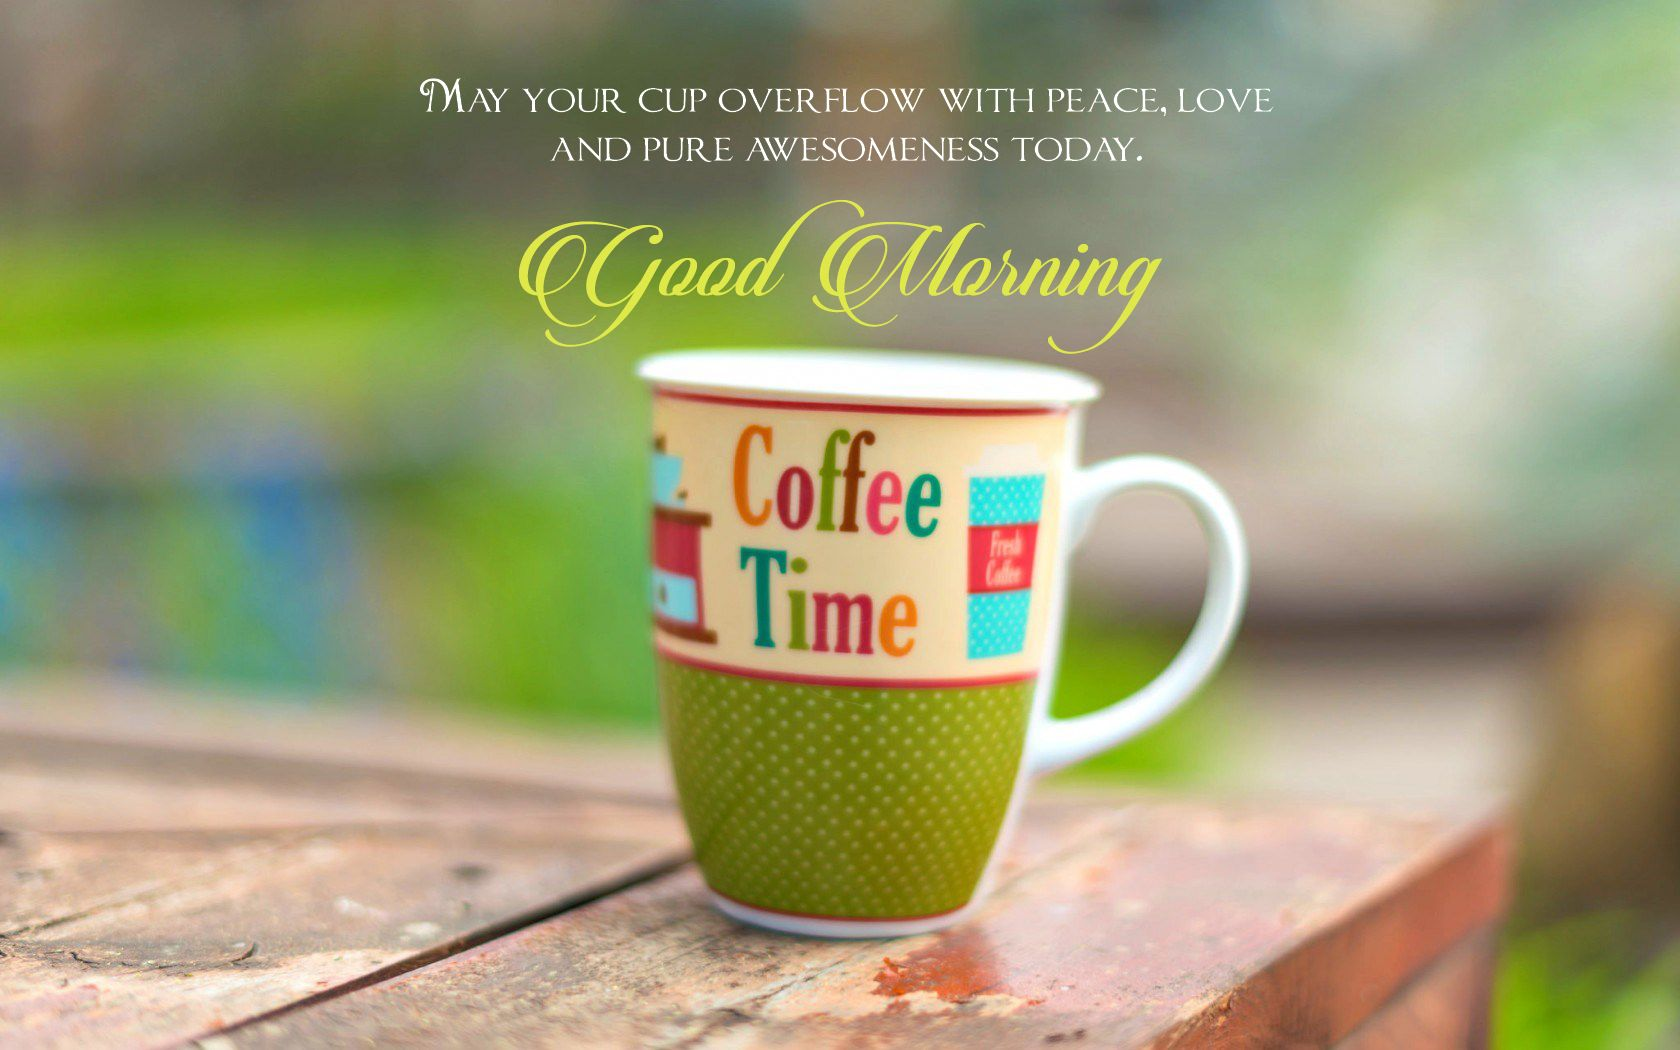 Good Morning Wish Wallpaper With Quotes For Whatsapp Good Morning, Have A  Nice Day, Happy Morning, HD , Wallpapers, Images, Greetings, Quotes, Free,  ...